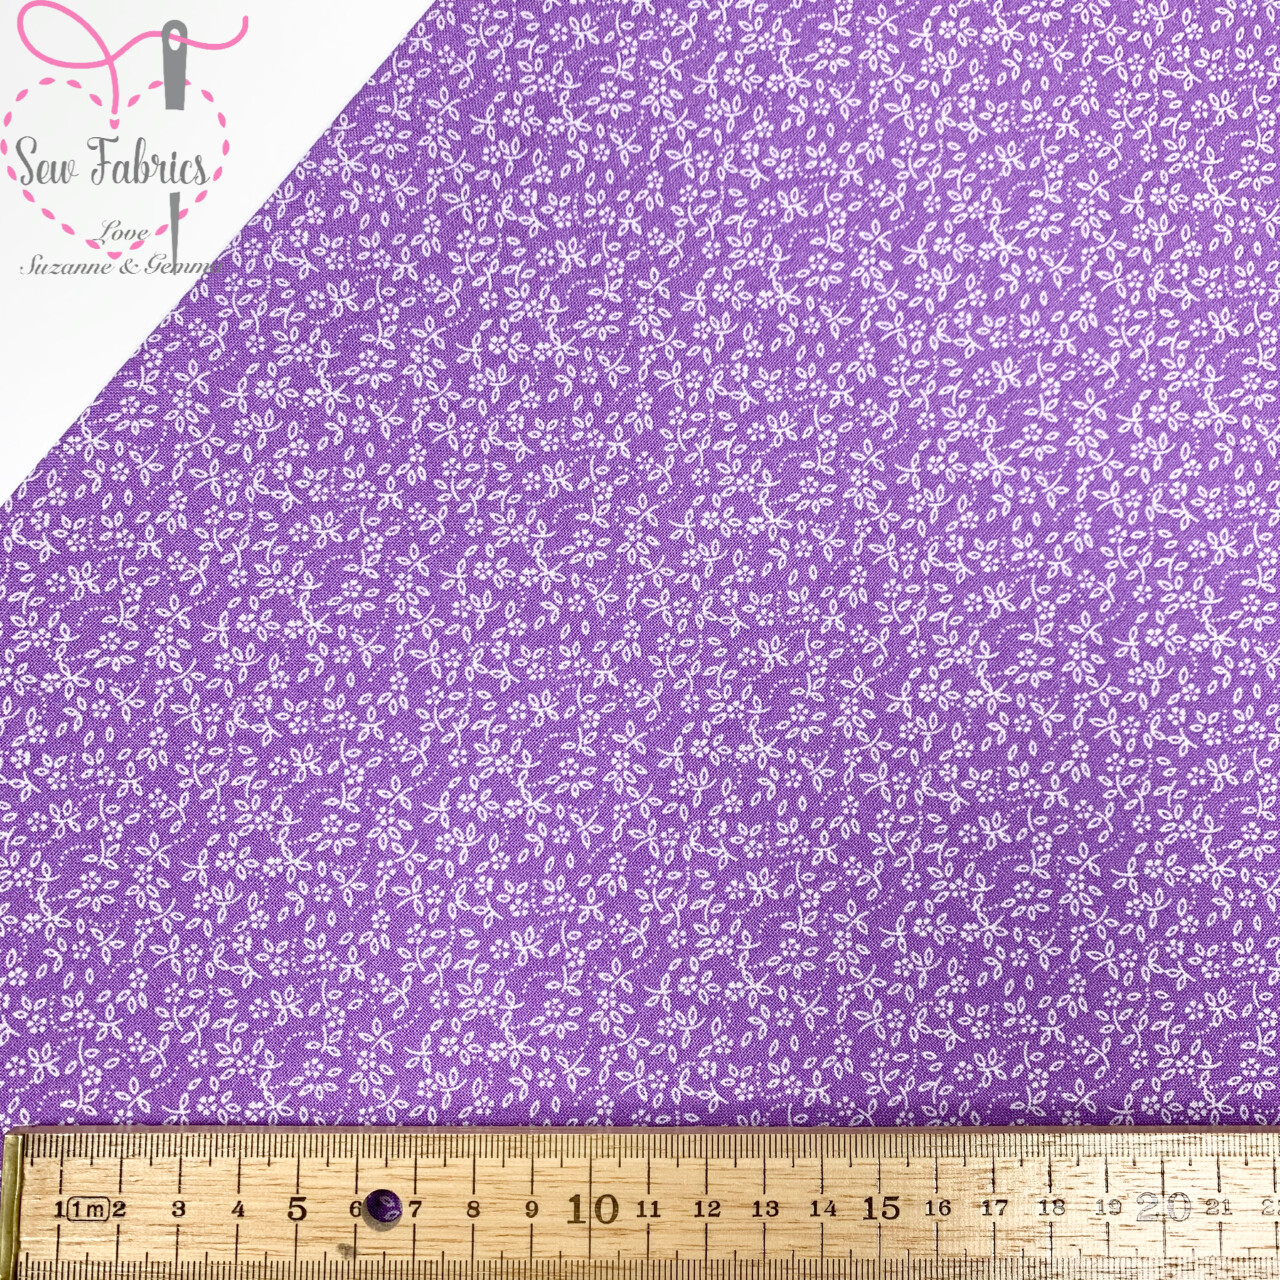 Lavender Lilac 100% Craft Cotton Ditsy Daisy Fabric Purple